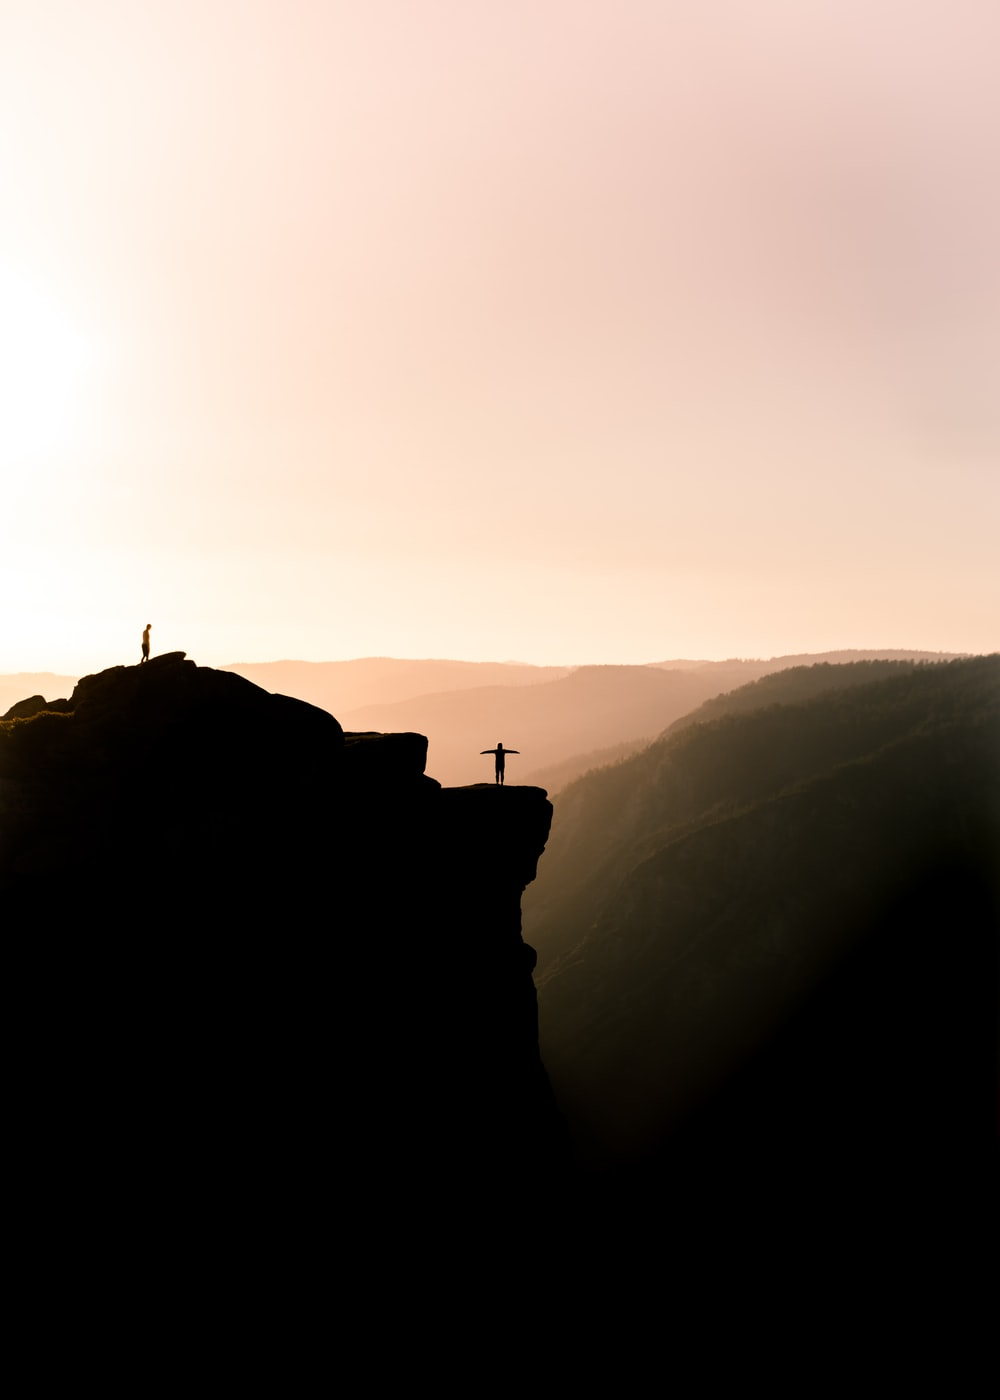 silhouette of person on cliff